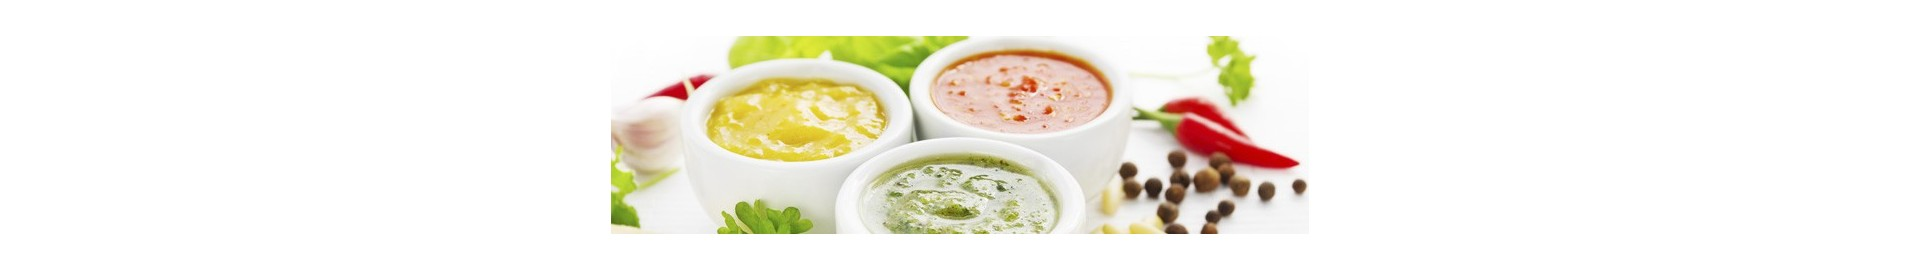 Sauces & aides culinaires